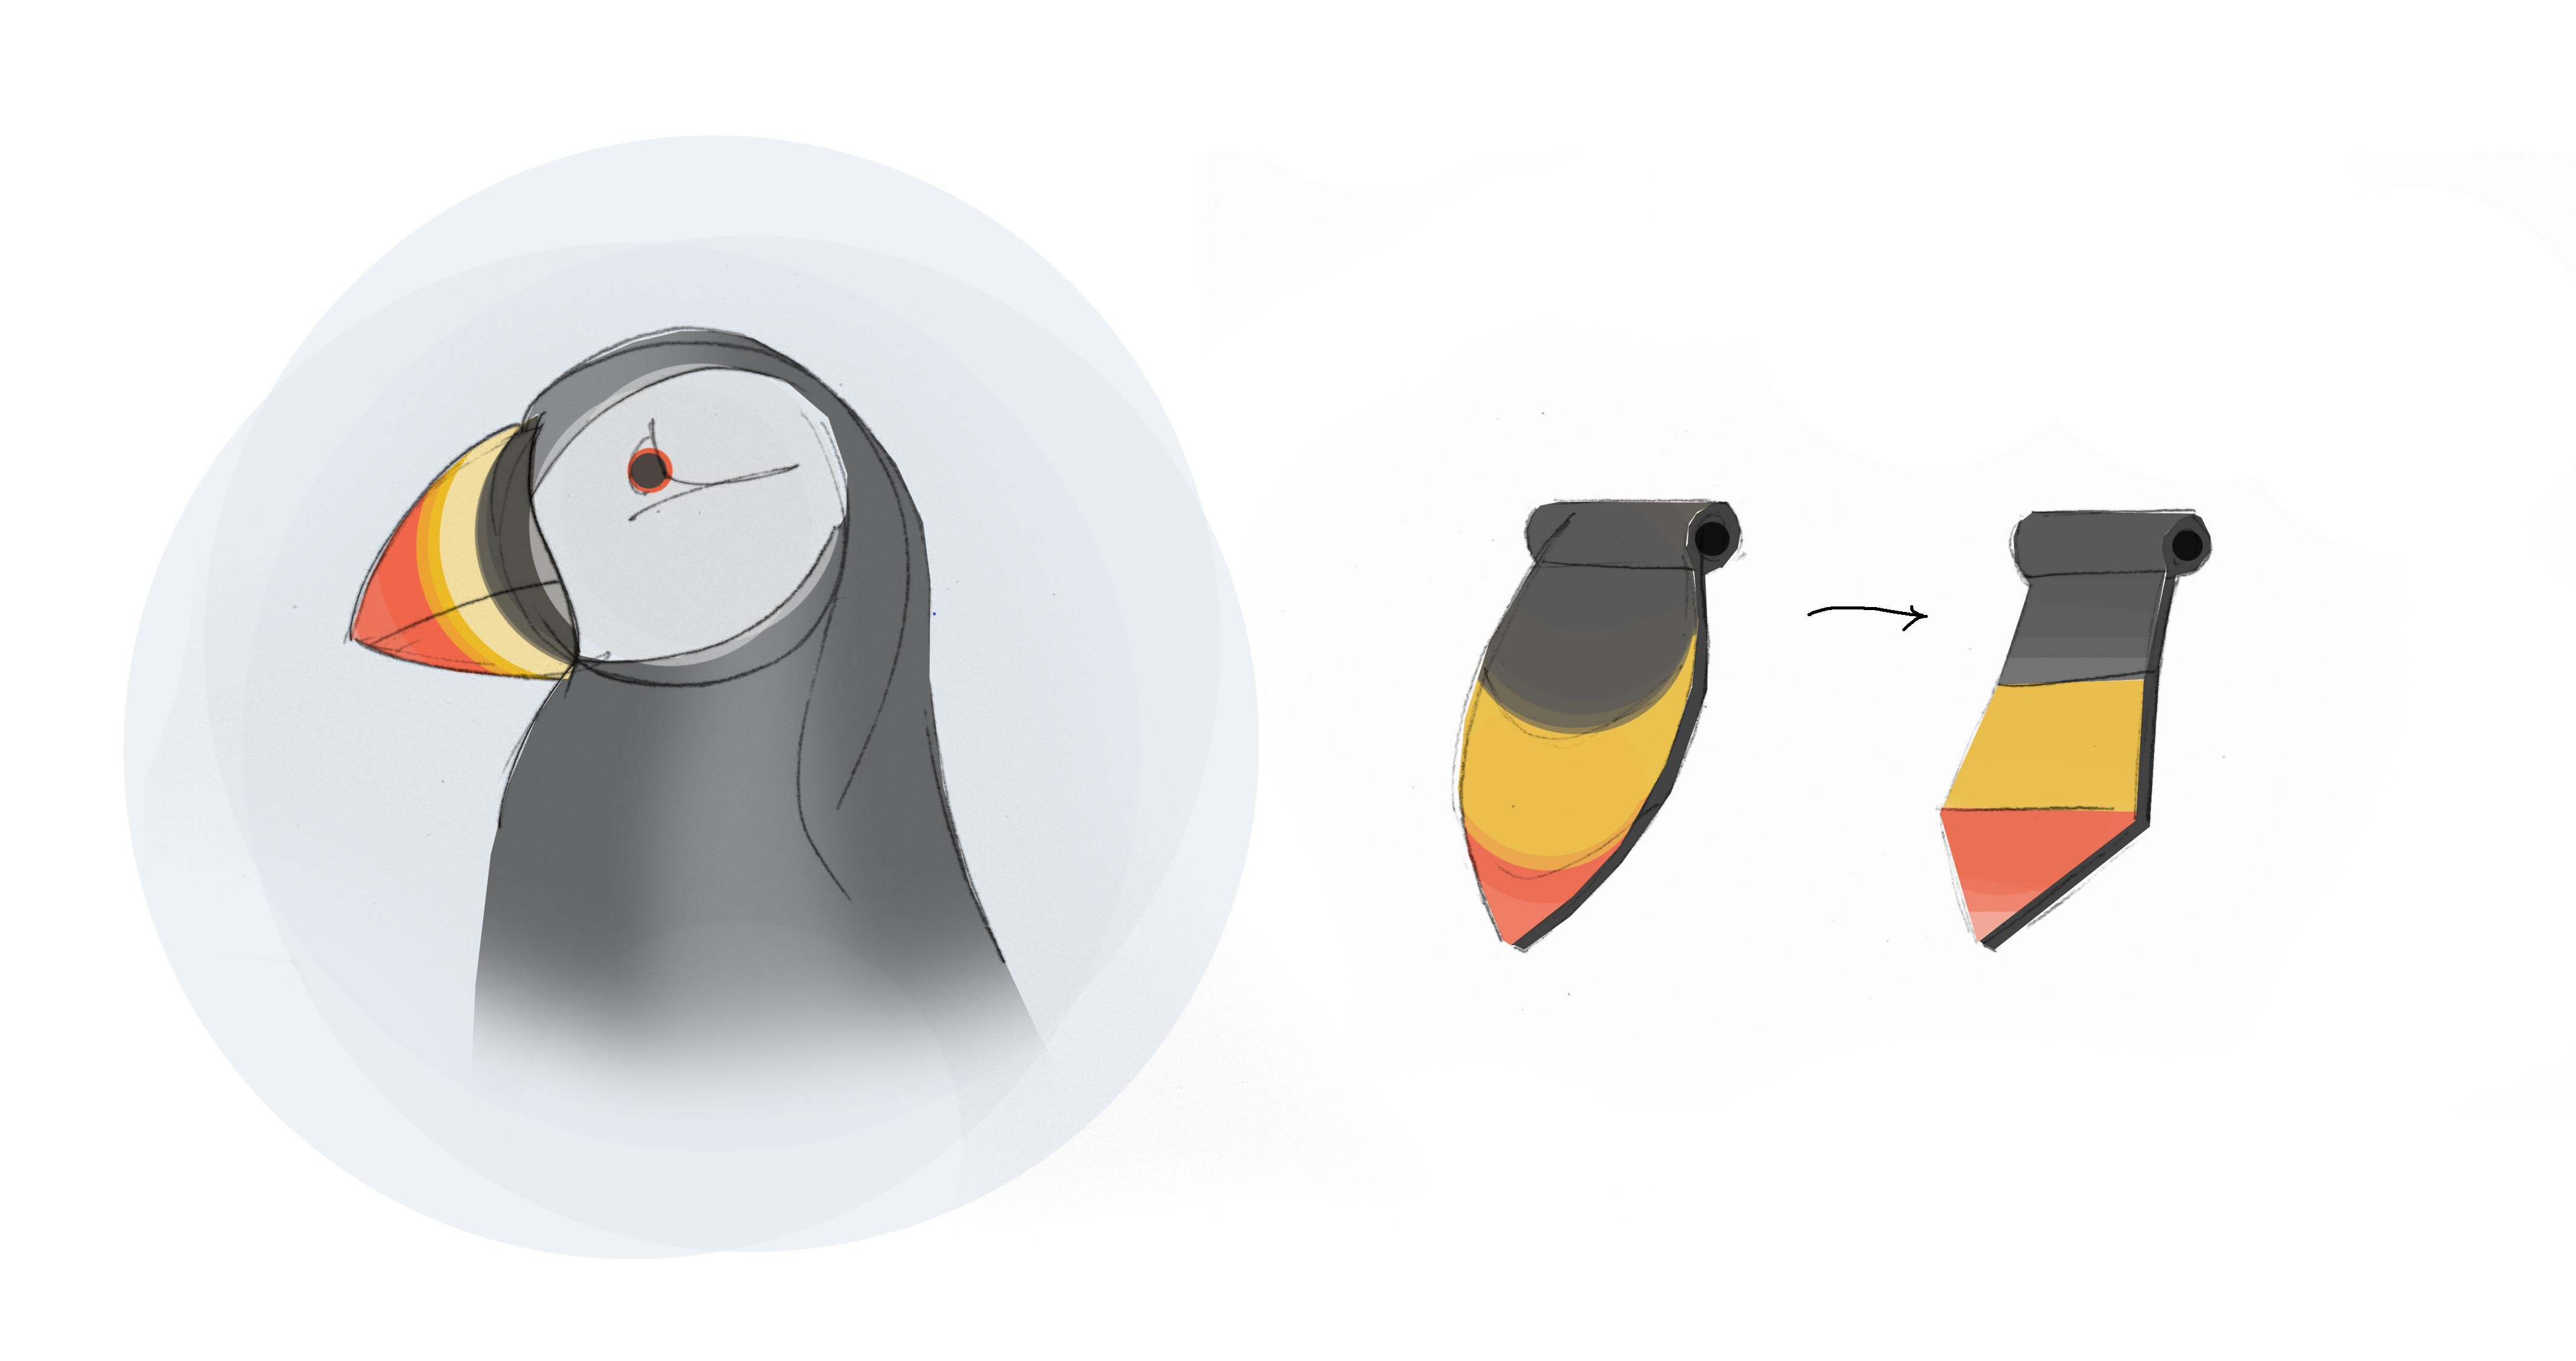 an Icelandic puffin provided the inspiration for the design of the new Icelandair amenity kits